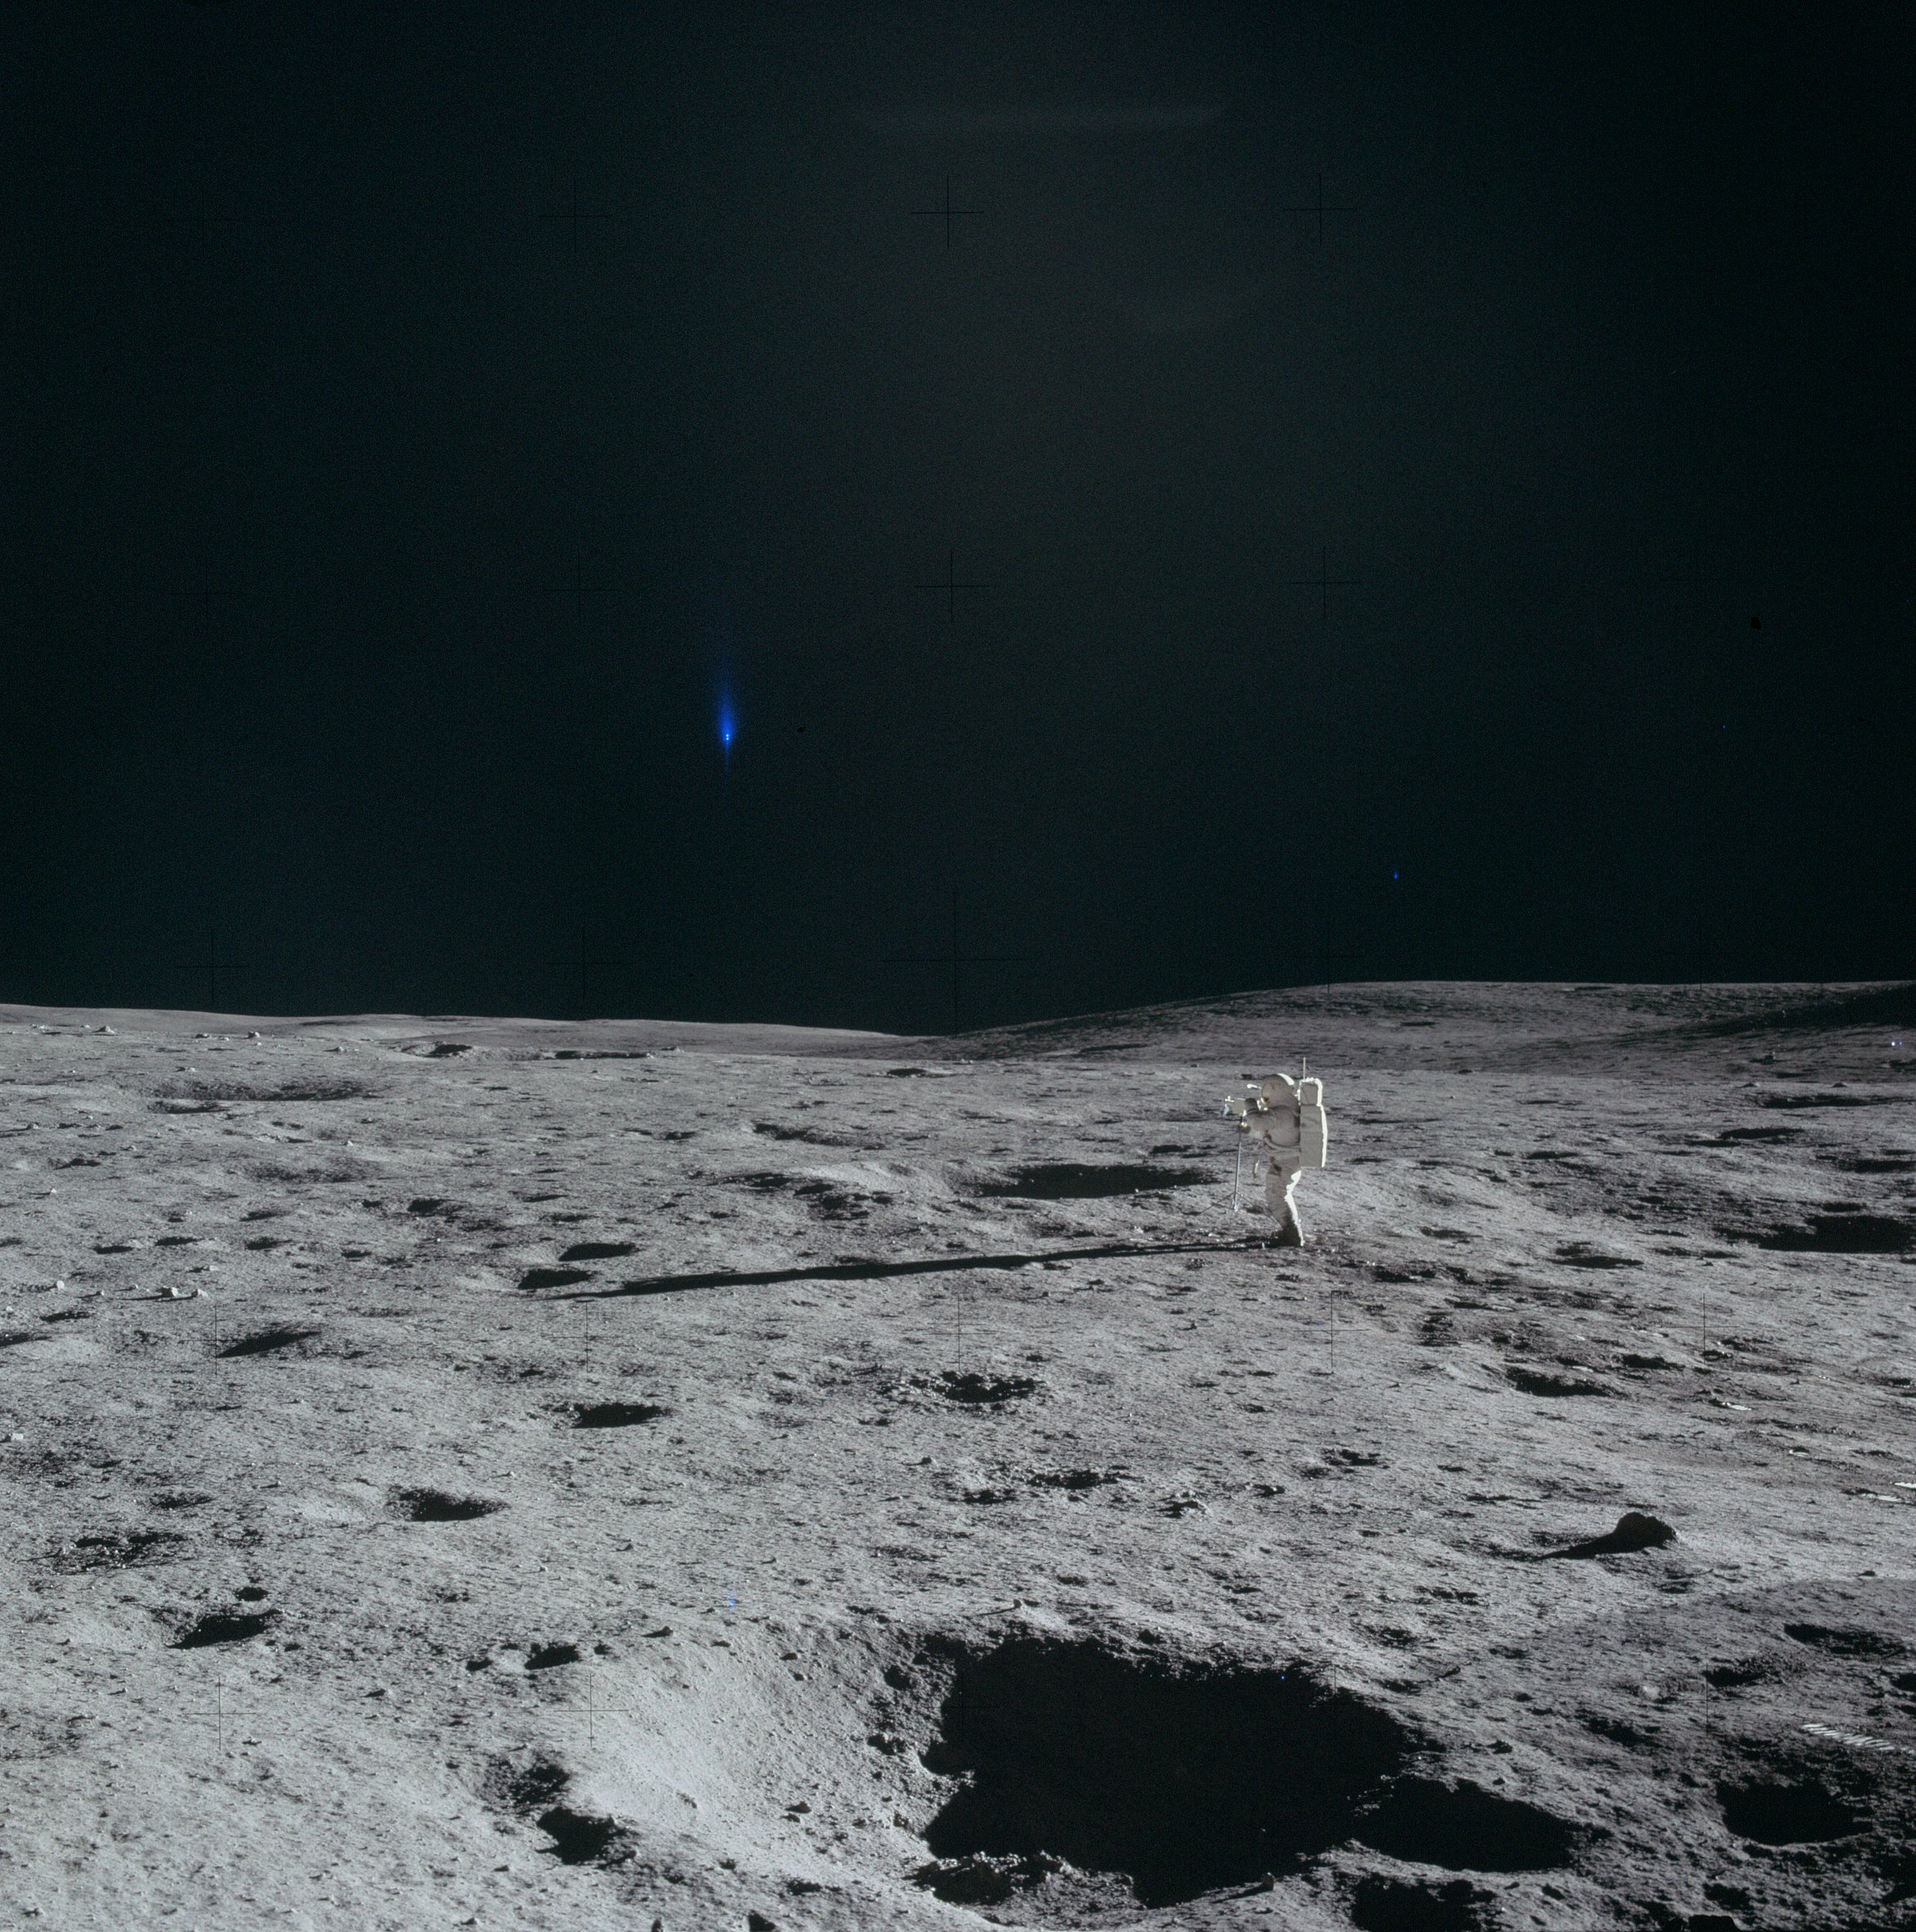 astronauts find structures on moon - photo #24